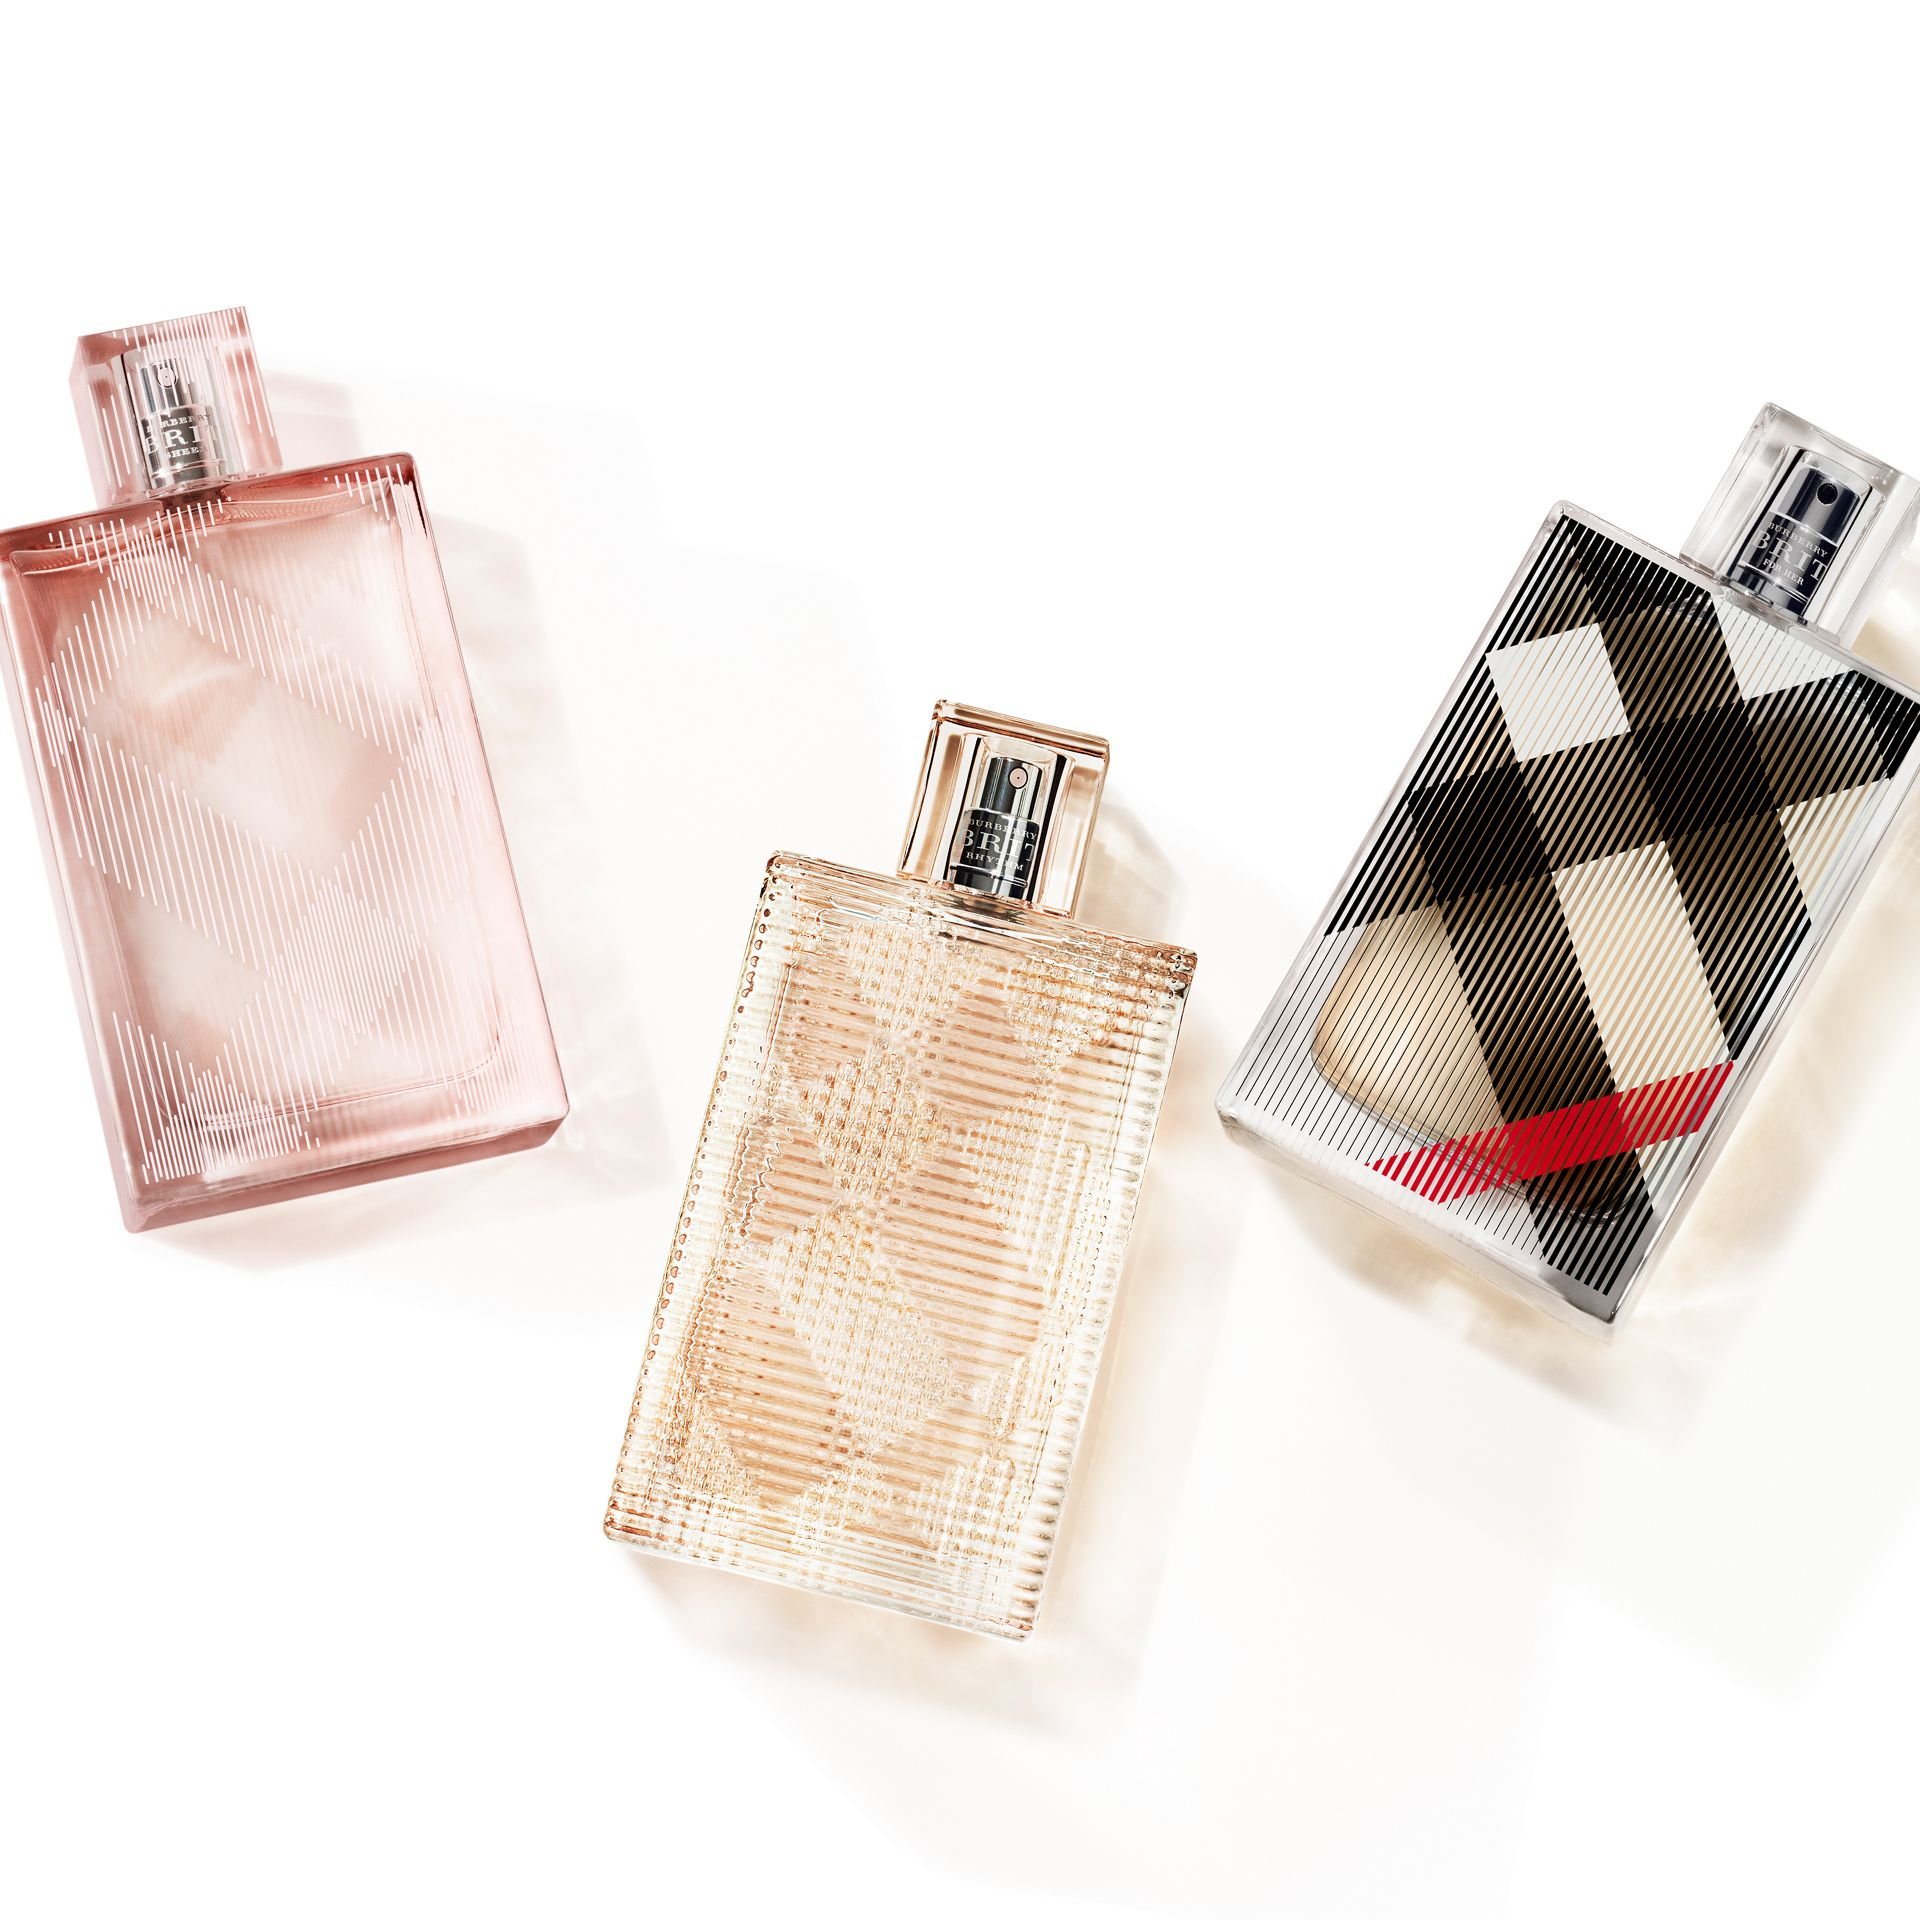 Eau de Toilette Burberry Brit for Her 100 ml - Femme | Burberry - photo de la galerie 4